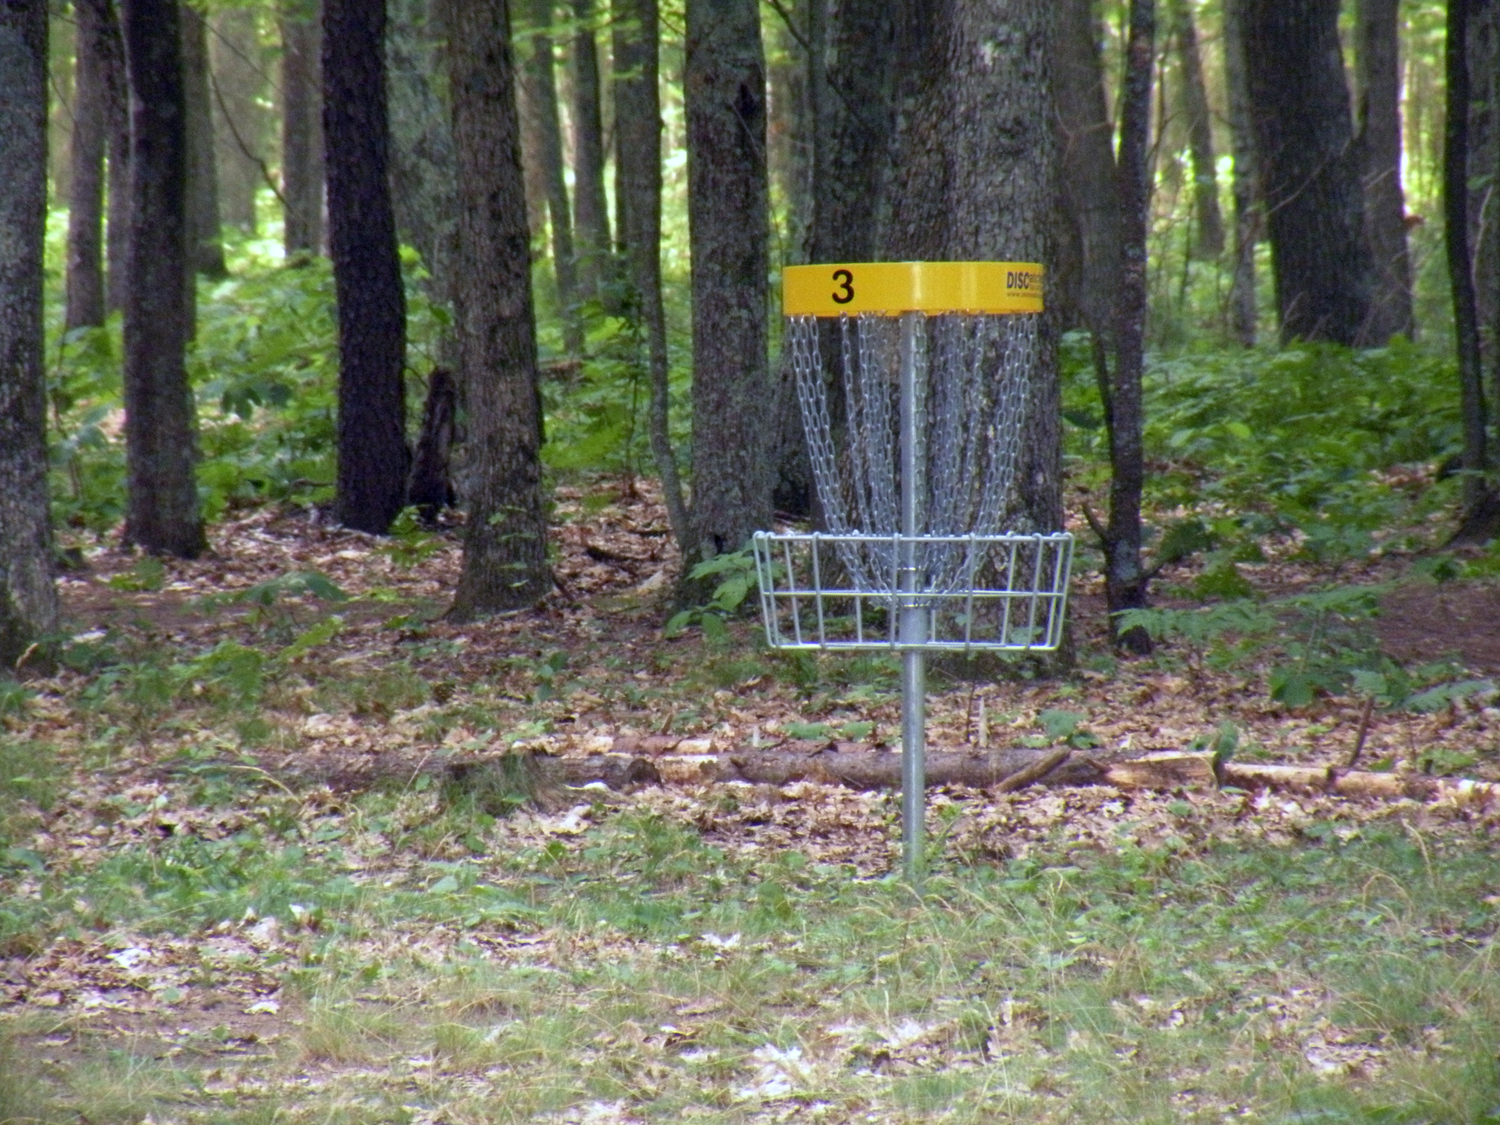 Udell Rollways, disc golf course hole 3